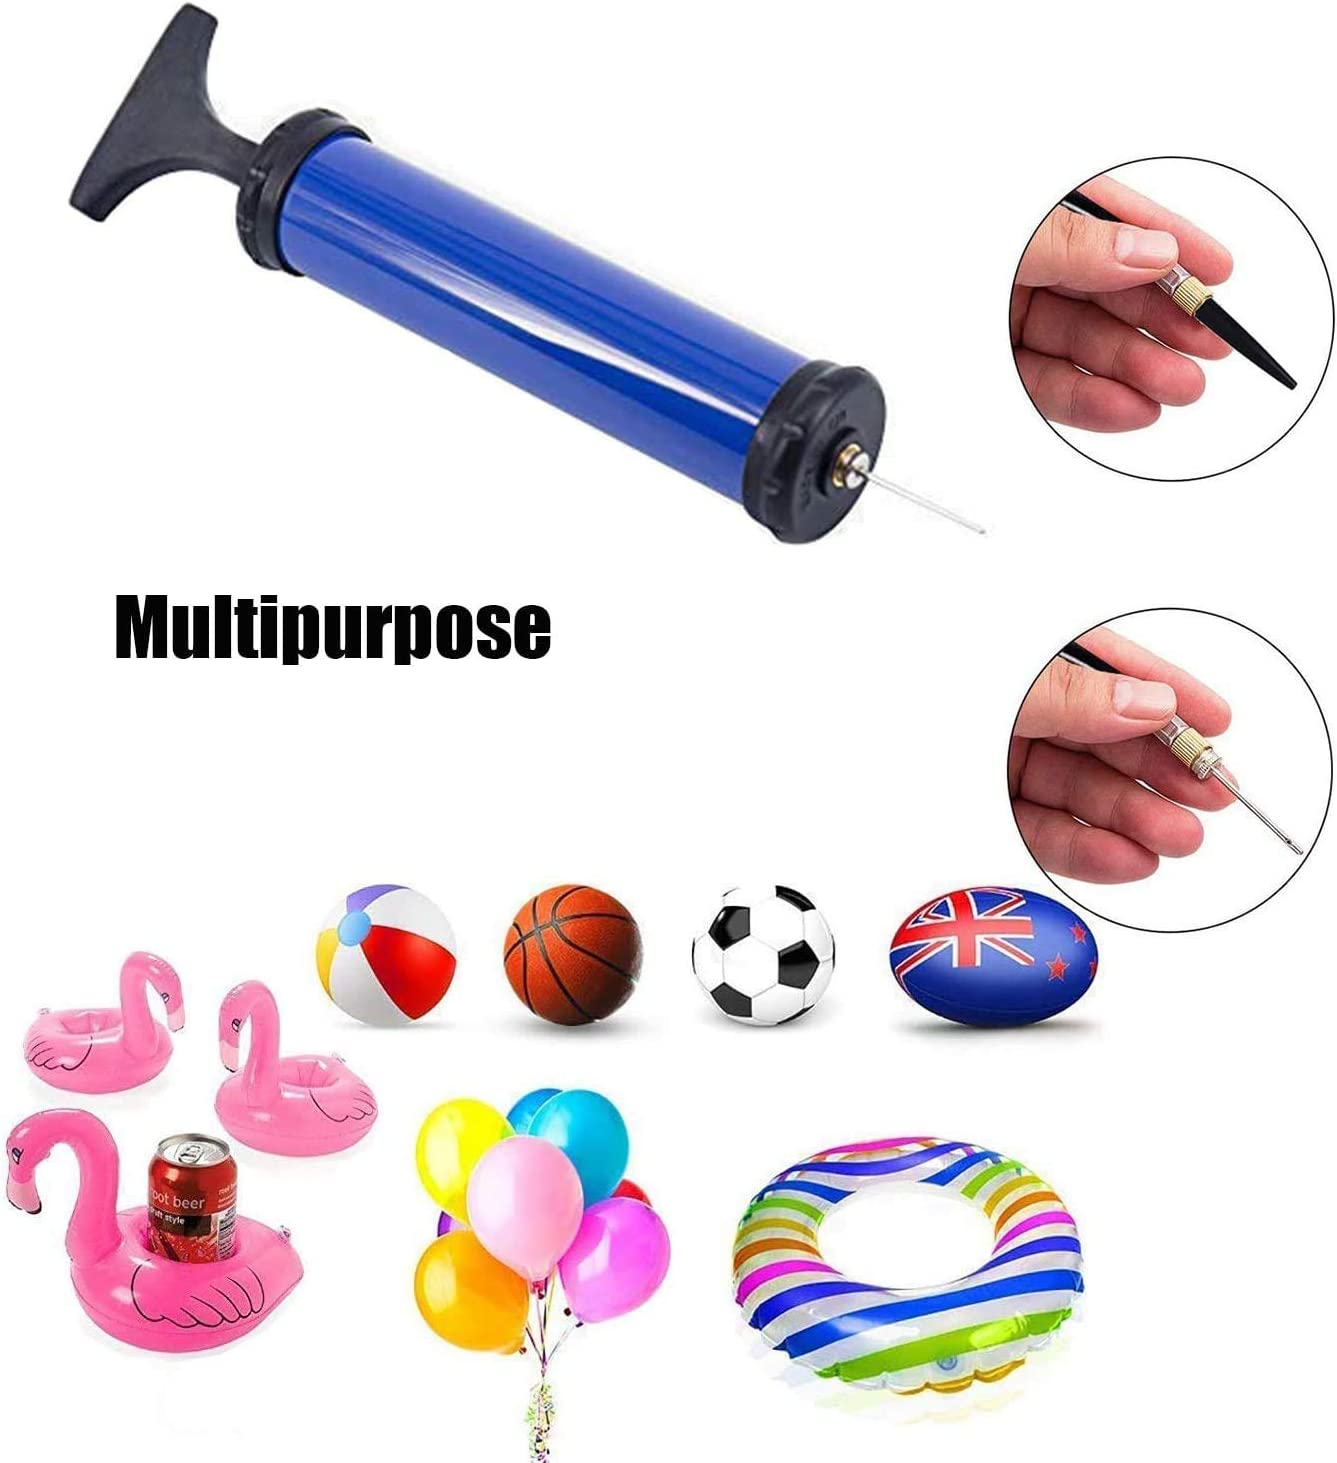 Oziral Hand Air Ball Pump Kit Portable Inflation Balloons Pump with 8 Pcs Needles and 2 Pcs Valve Adapter 1 Pcs Air Hose for Football Basketball Volleyball Rugby 8 inch